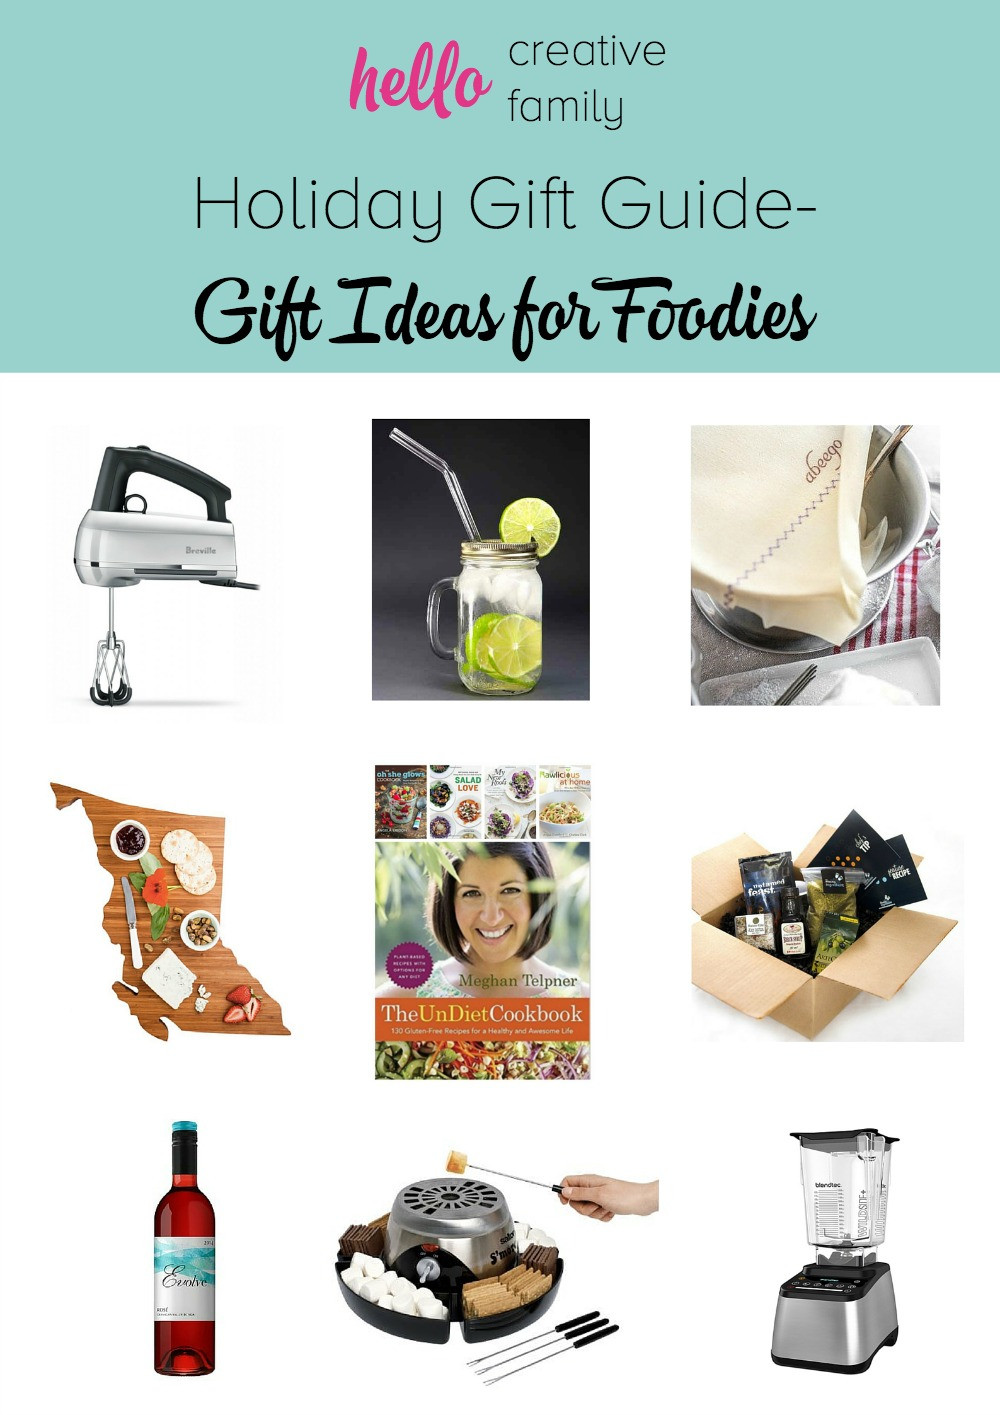 Holiday Gift Giving Ideas  Holiday Gift Guide Holiday Gift Ideas for Creative Kids